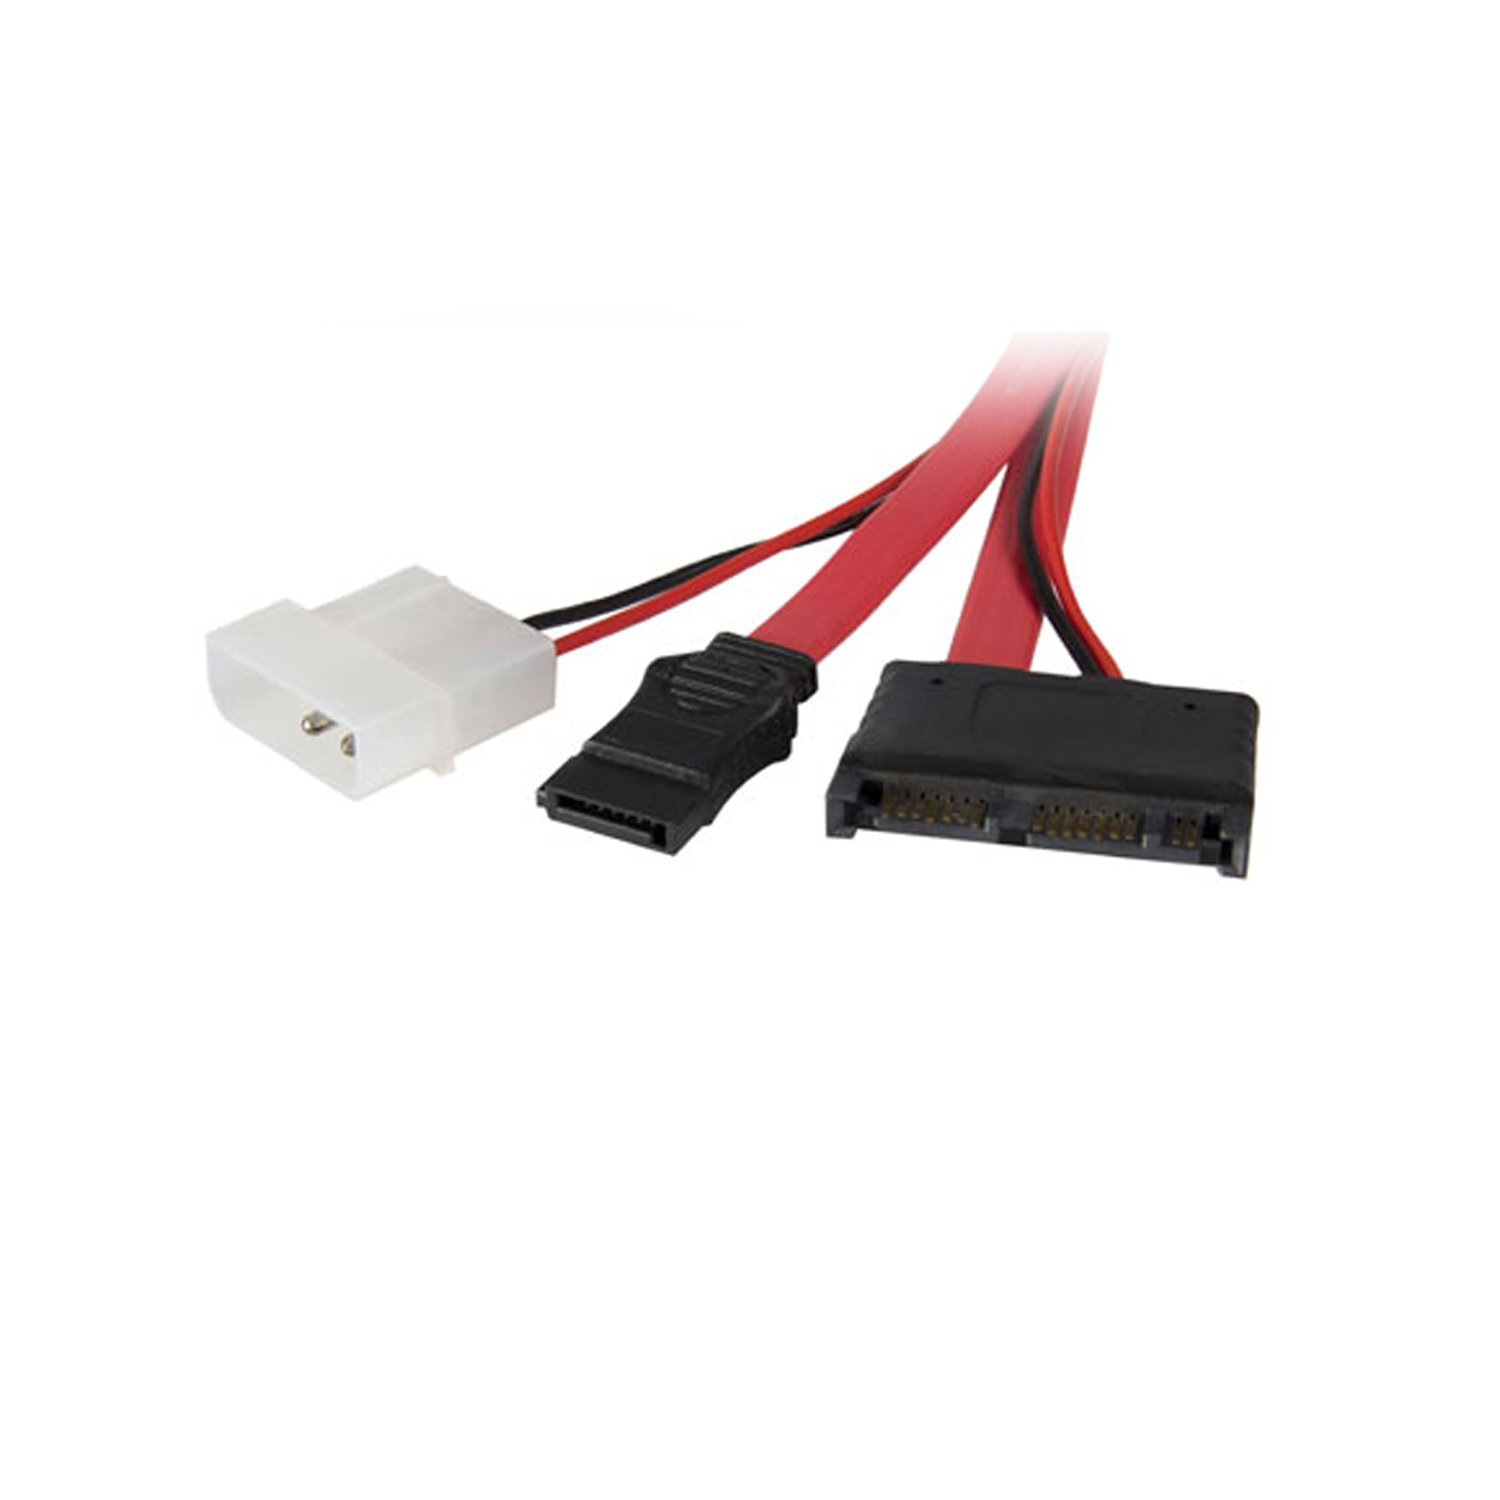 StarTech.com Micro SATA to SATA with LP4 Power Cable Adapter - 12 Inch (MCSATAM12)